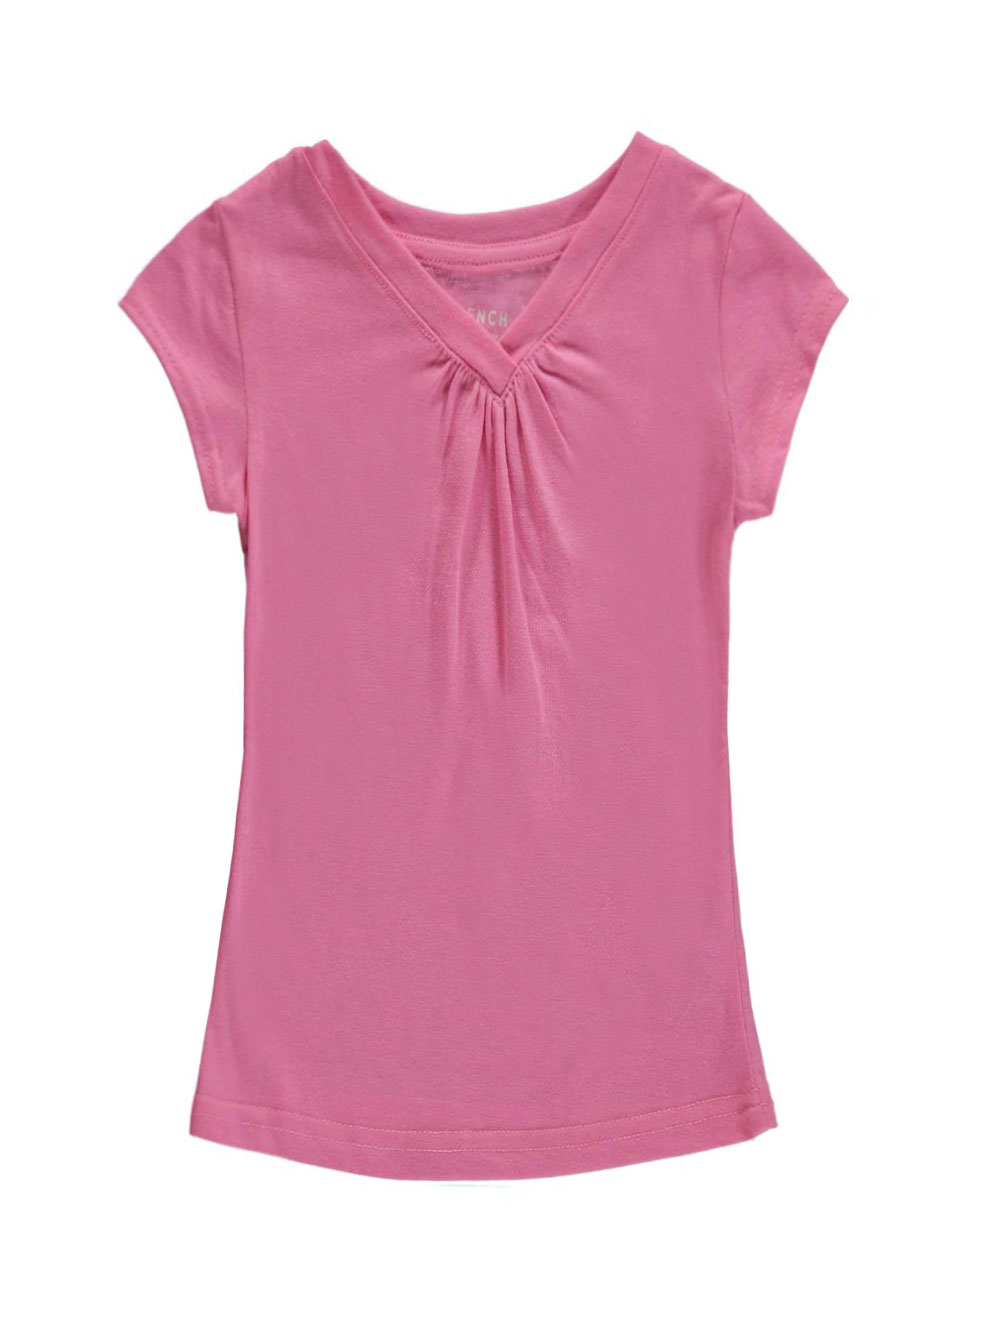 Image of French Toast Little Girls Toddler Ruched VNeck TShirt Sizes 2T  4T  sachet pink 4t